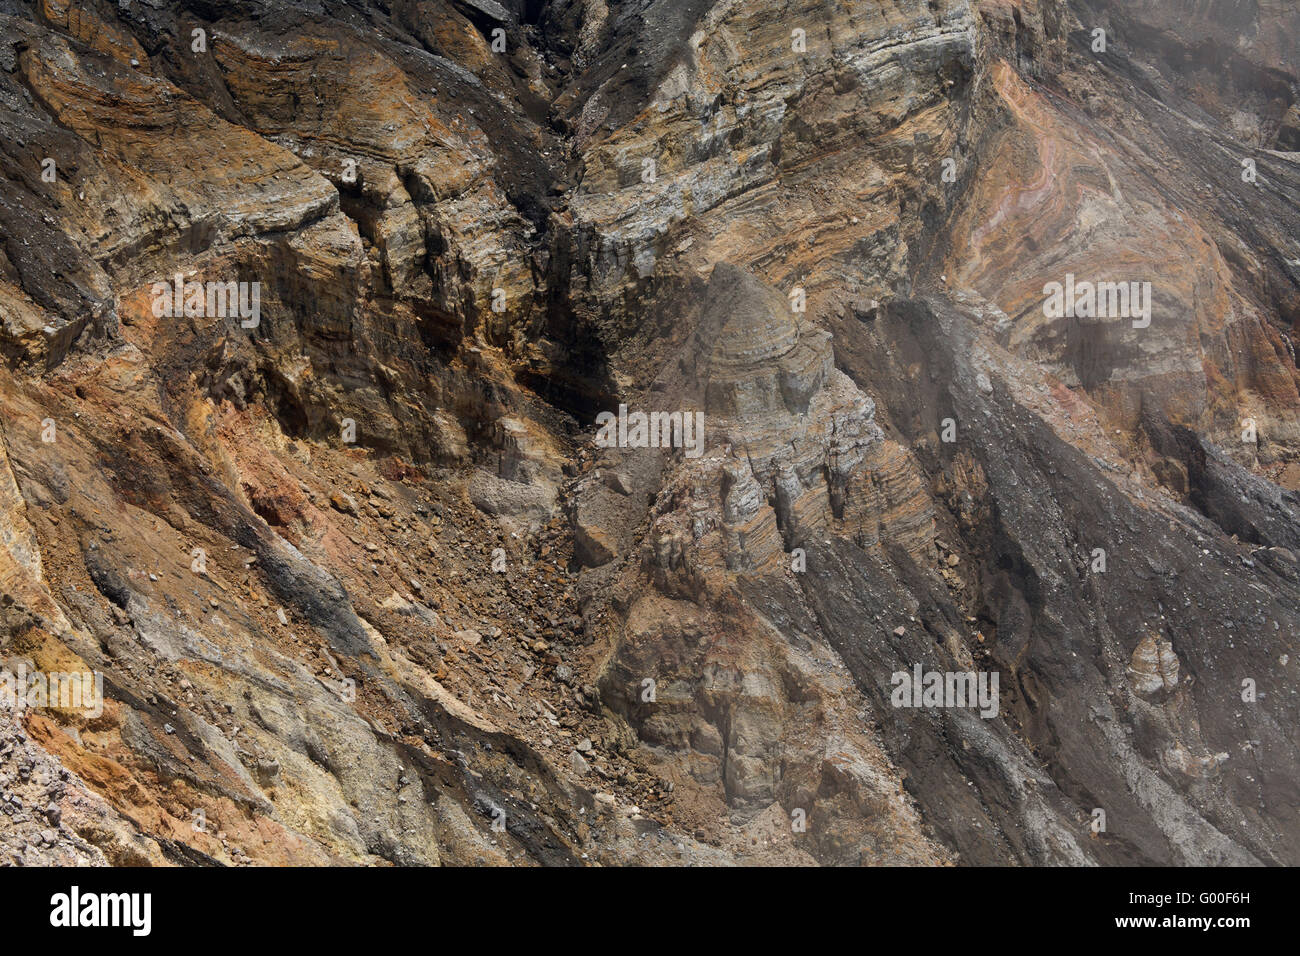 Stratified, mineral-rich rock in the crater of Poas Volcano in Poas Volcano National Park in Costa Rica. - Stock Image